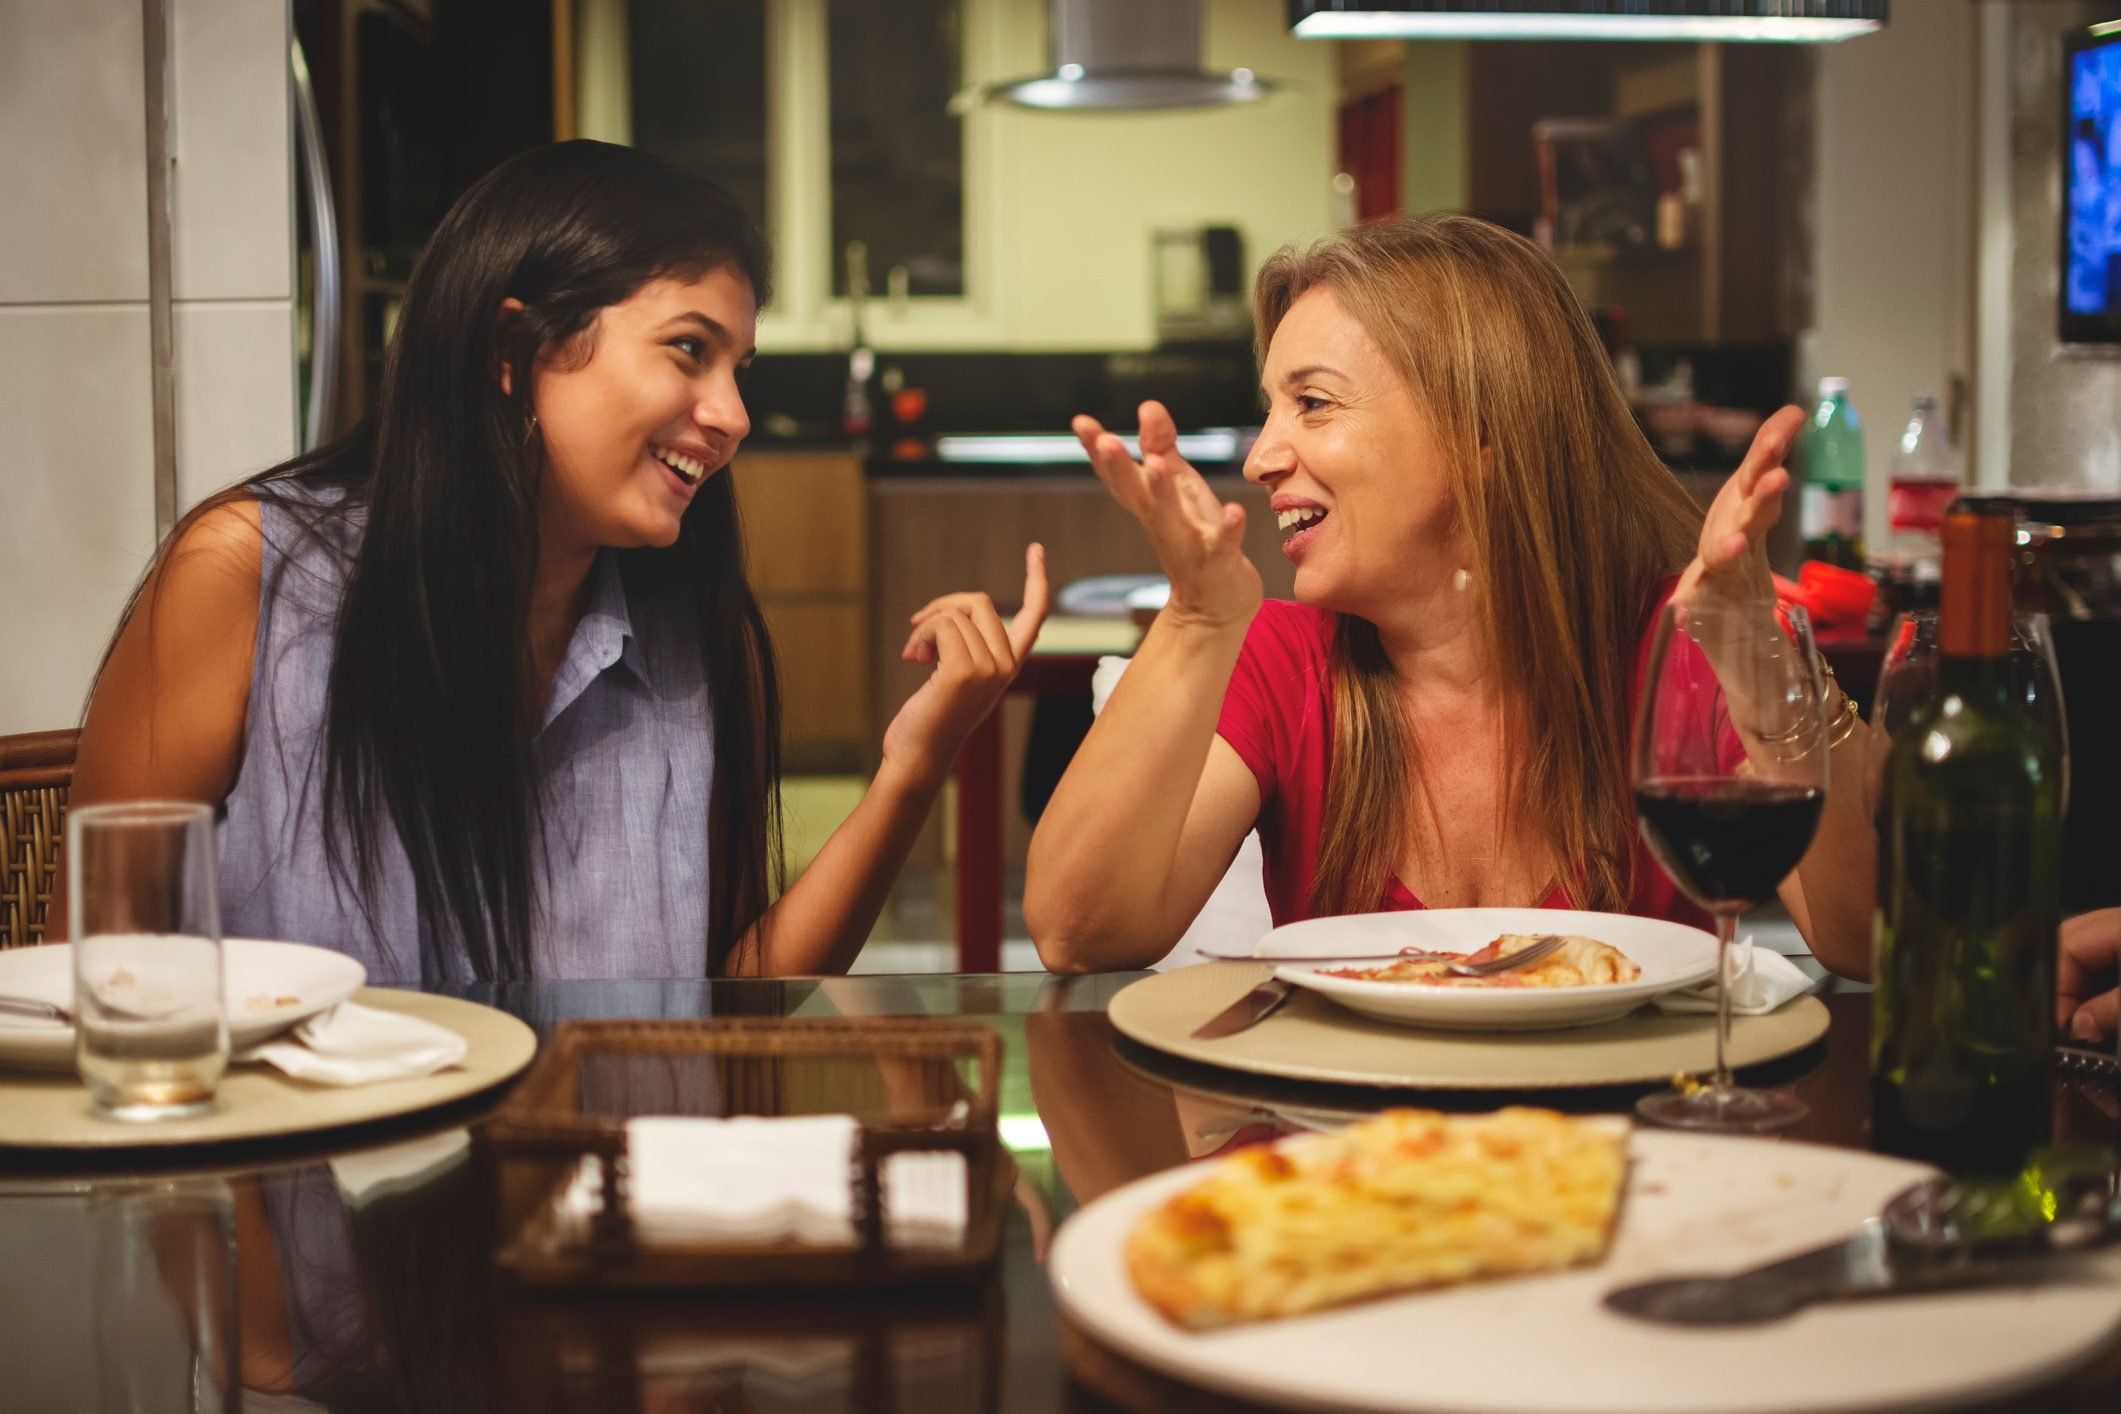 Mother and daughter eating pizza together at dining table and talking.